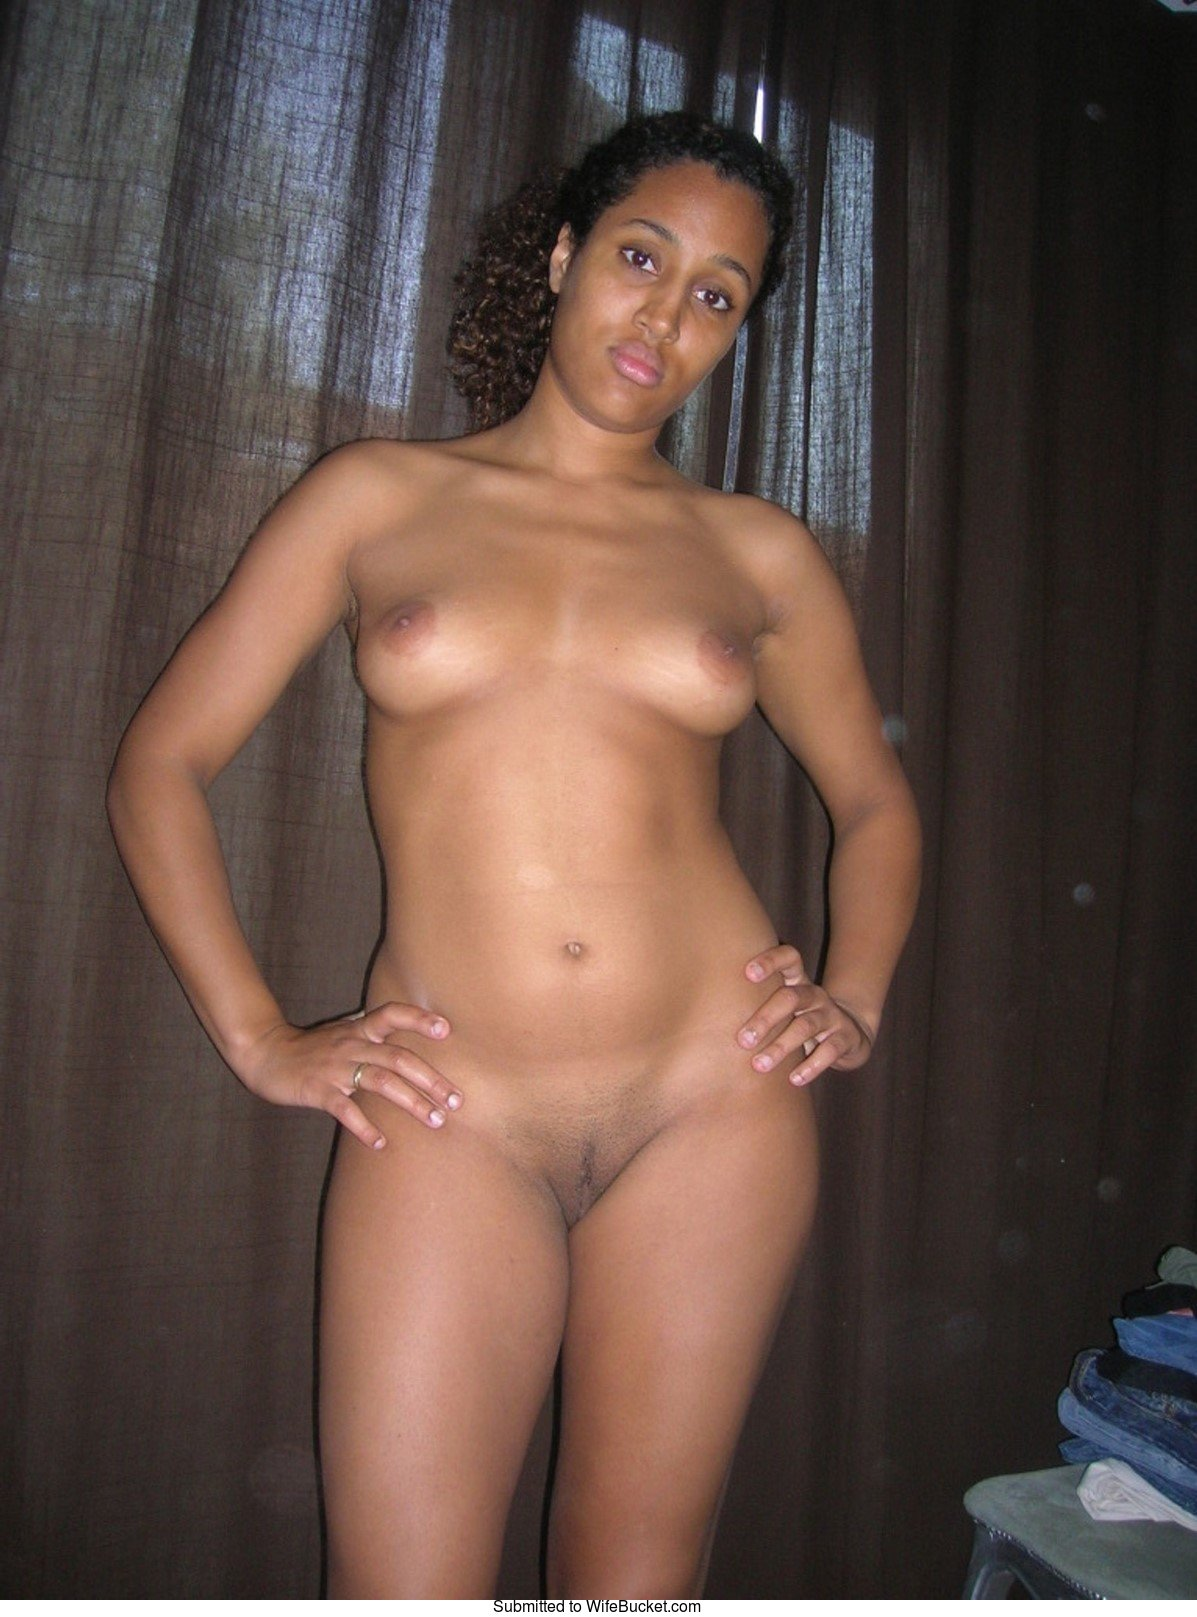 looking for your wife nude